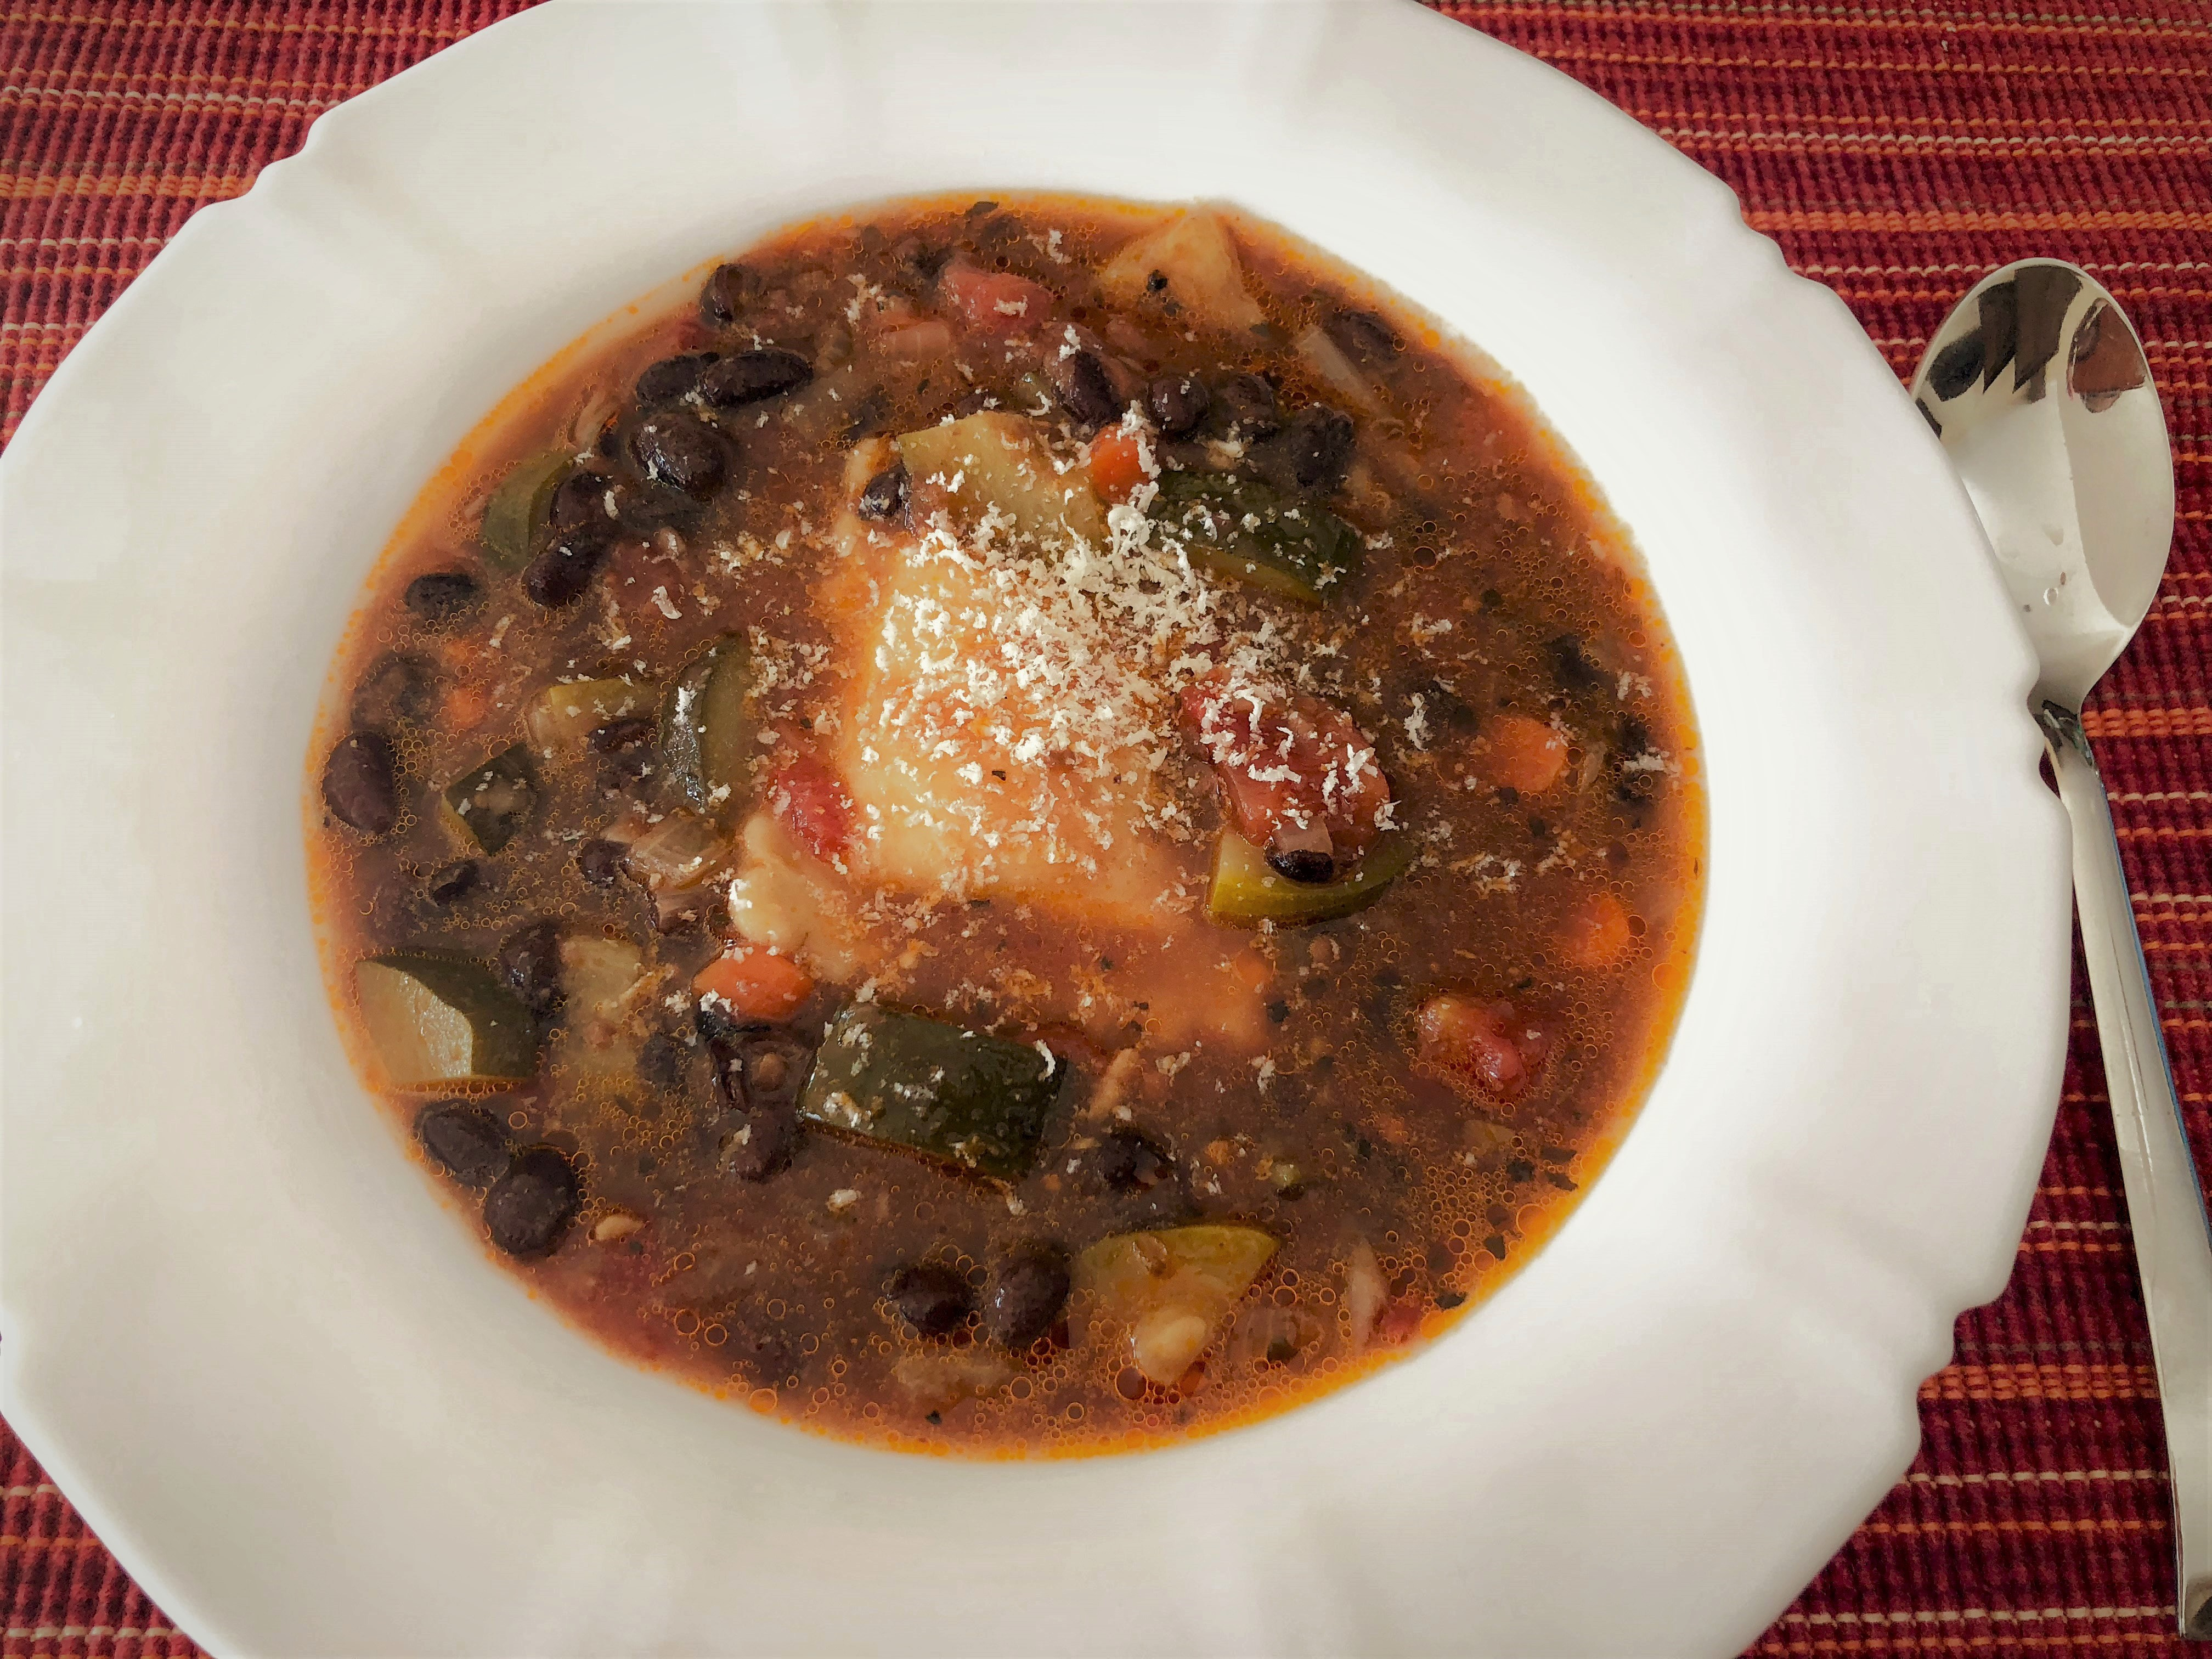 Homemade Minestrone Soup with Ravioli - The Kitchen Docs